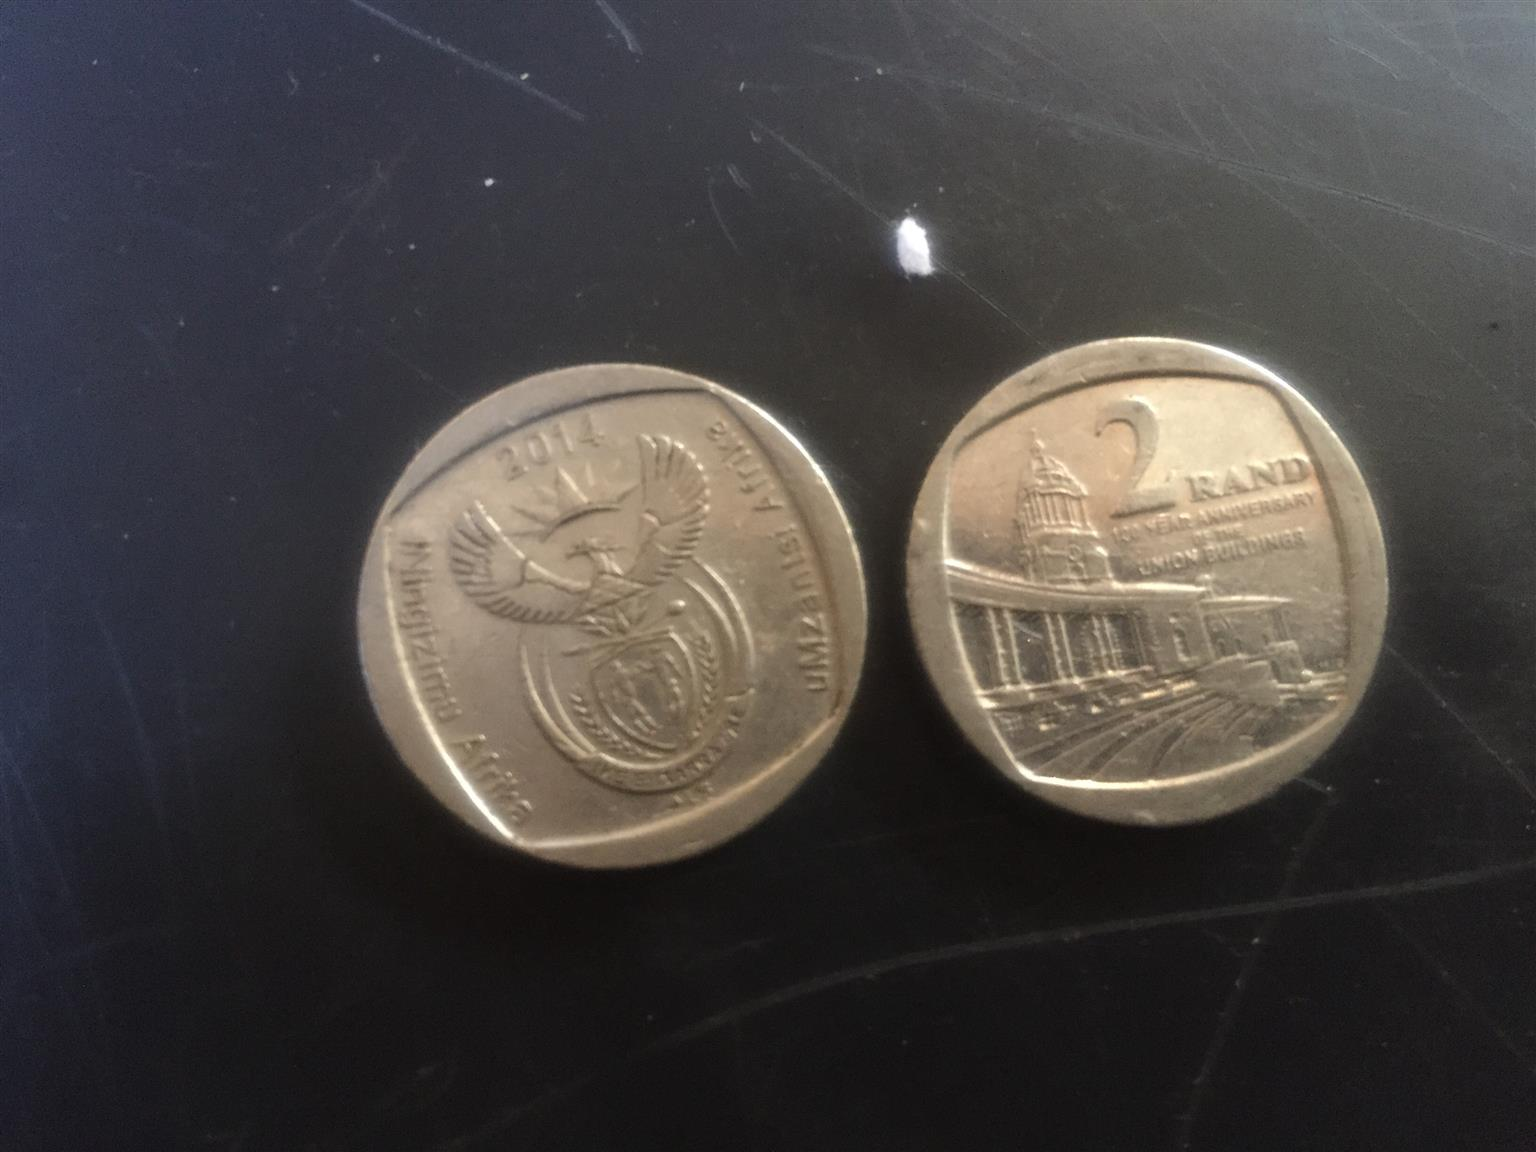 Union building coin